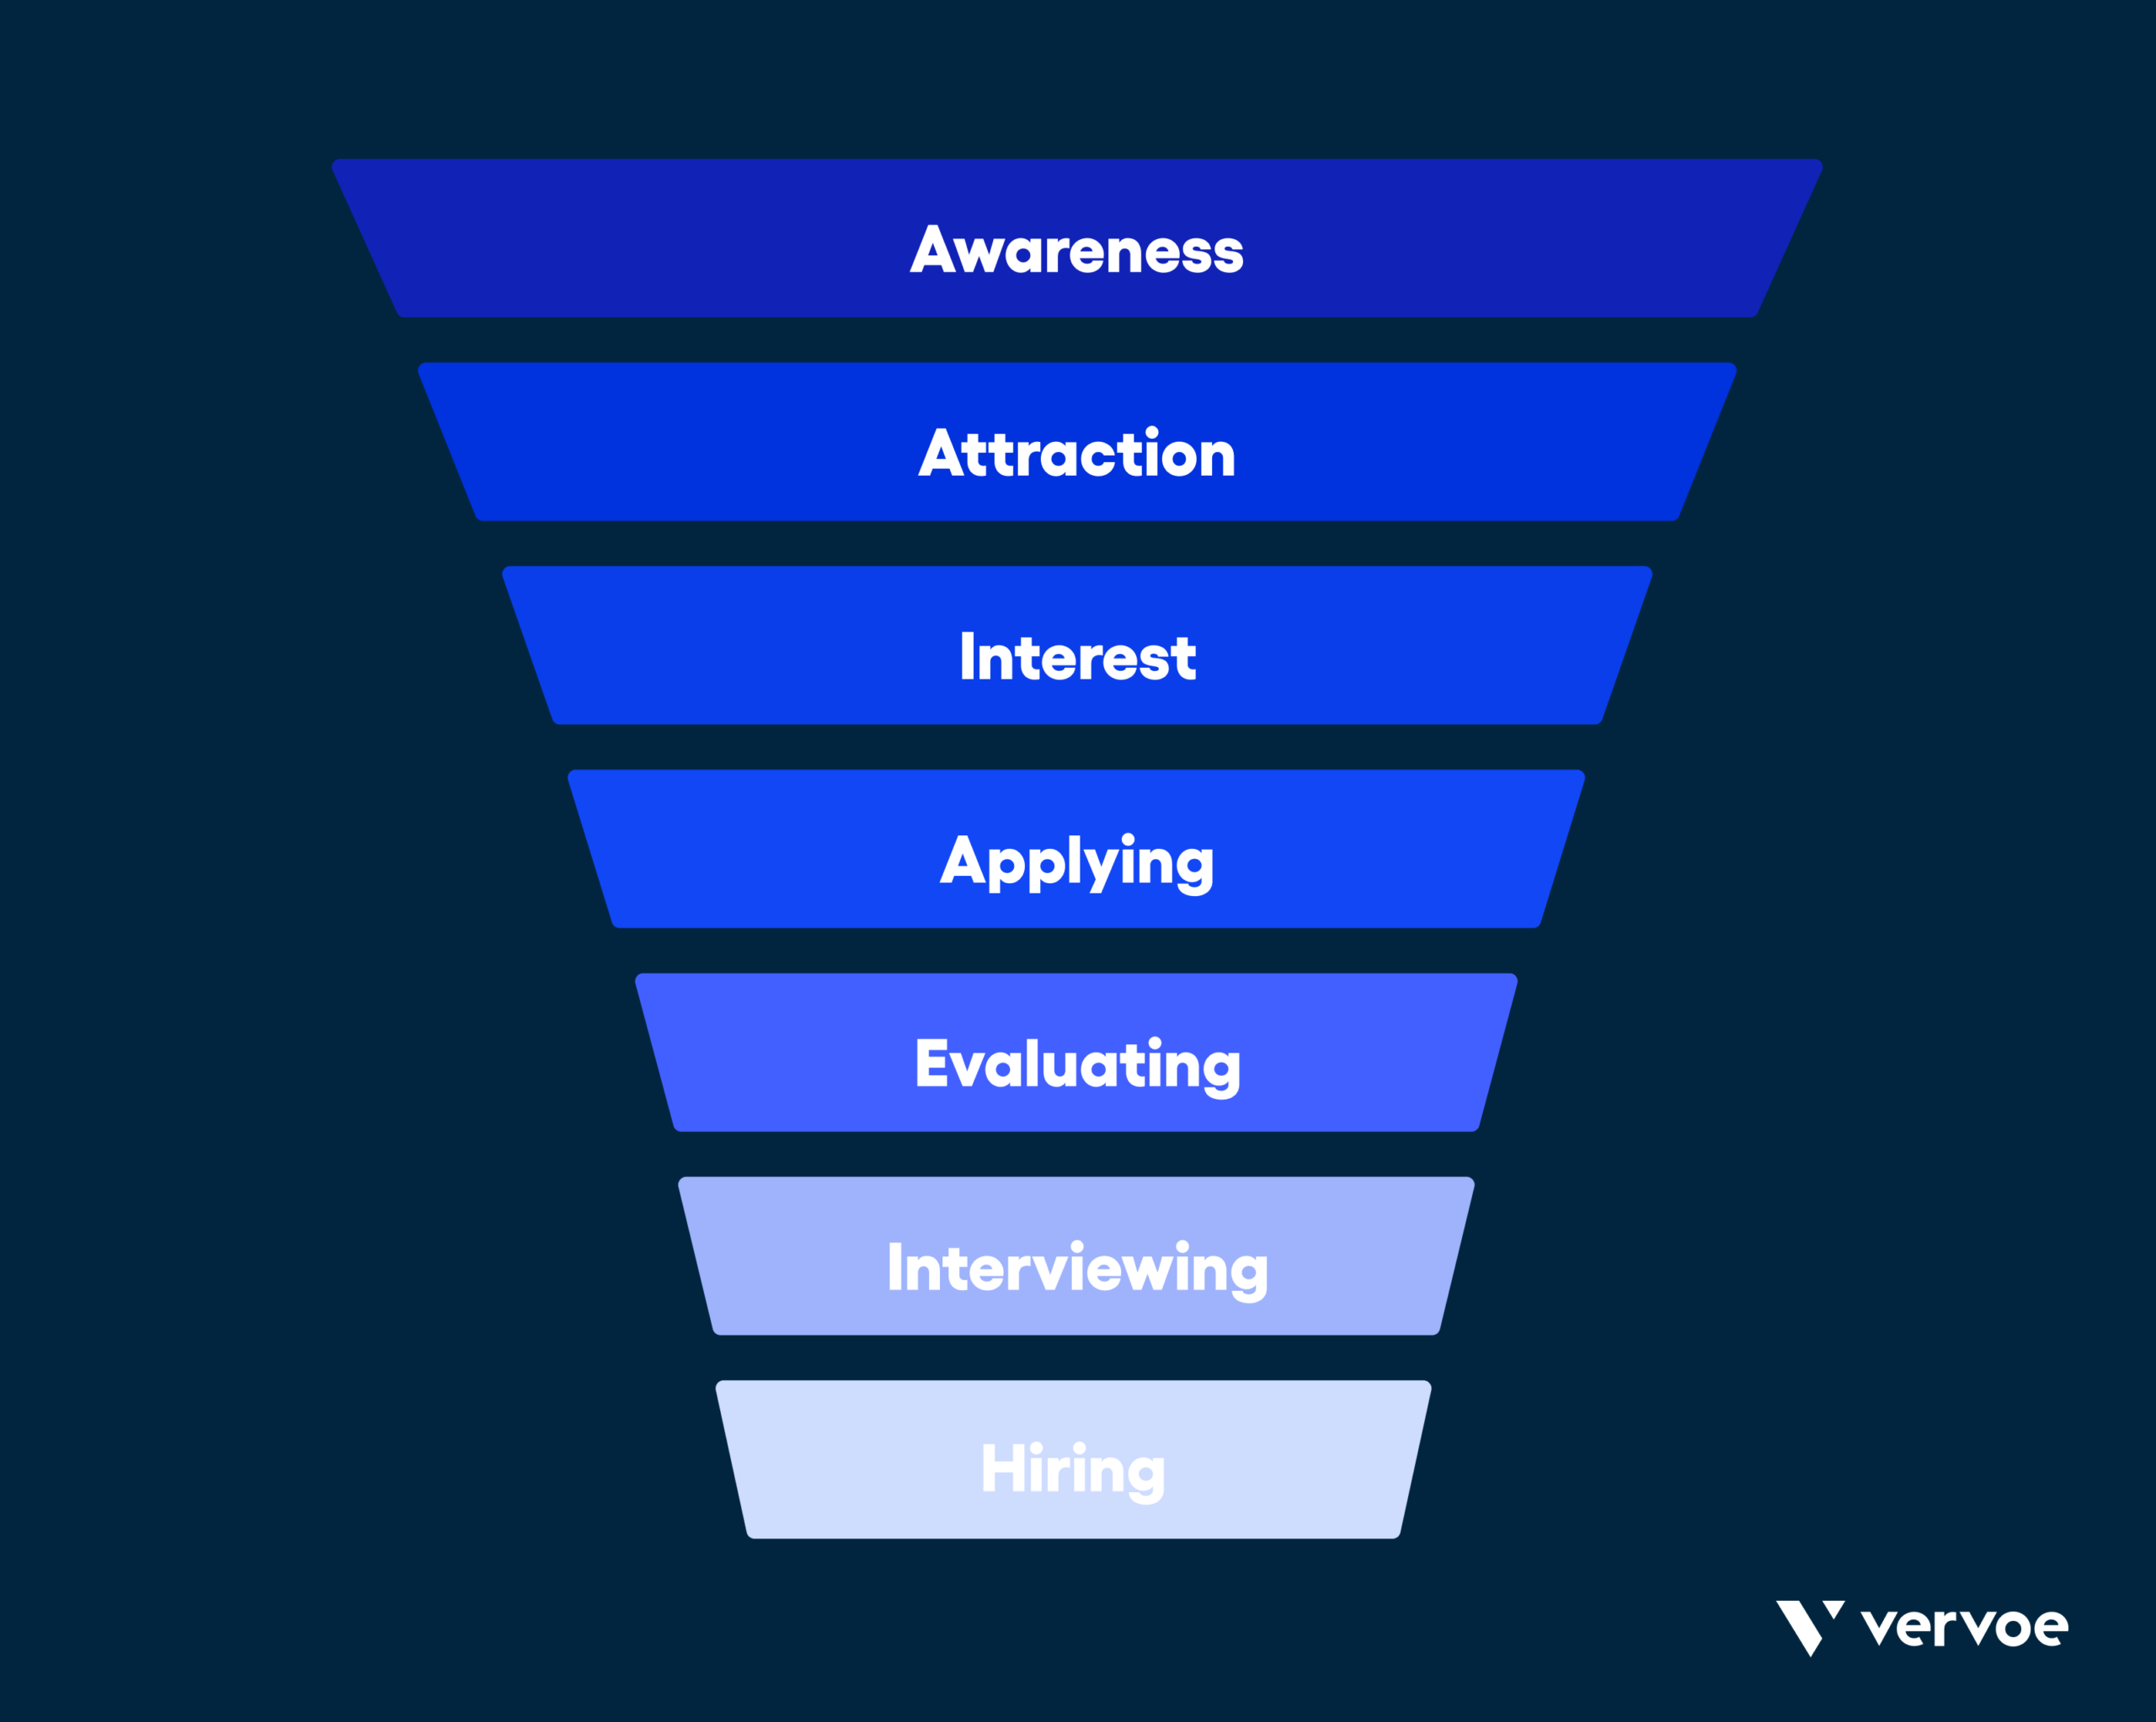 Infographic showing 7 steps of recruitment funnel